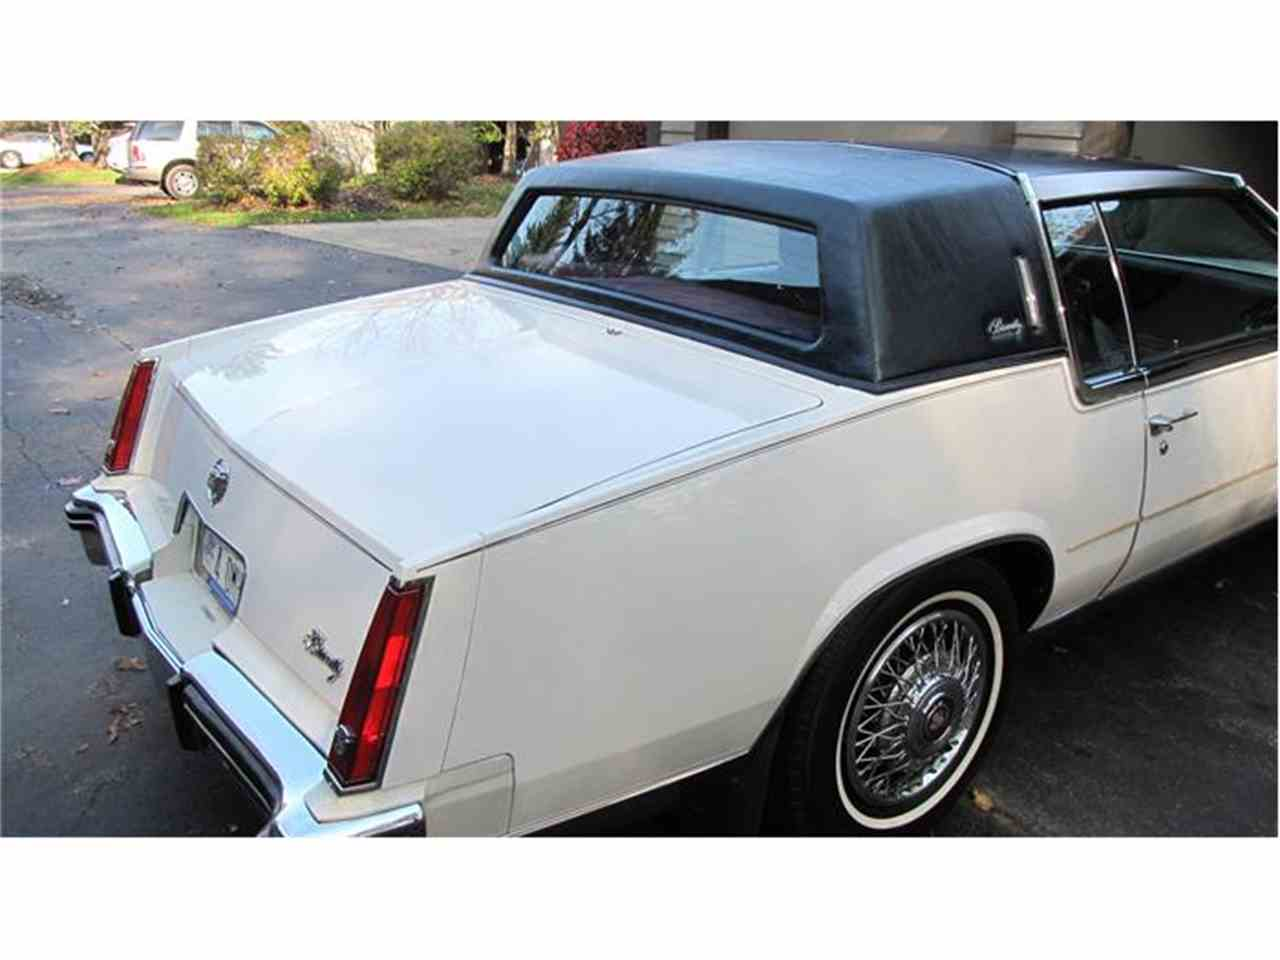 Large Picture of 1984 Eldorado Biarritz - $15,000.00 Offered by a Private Seller - 7FZZ